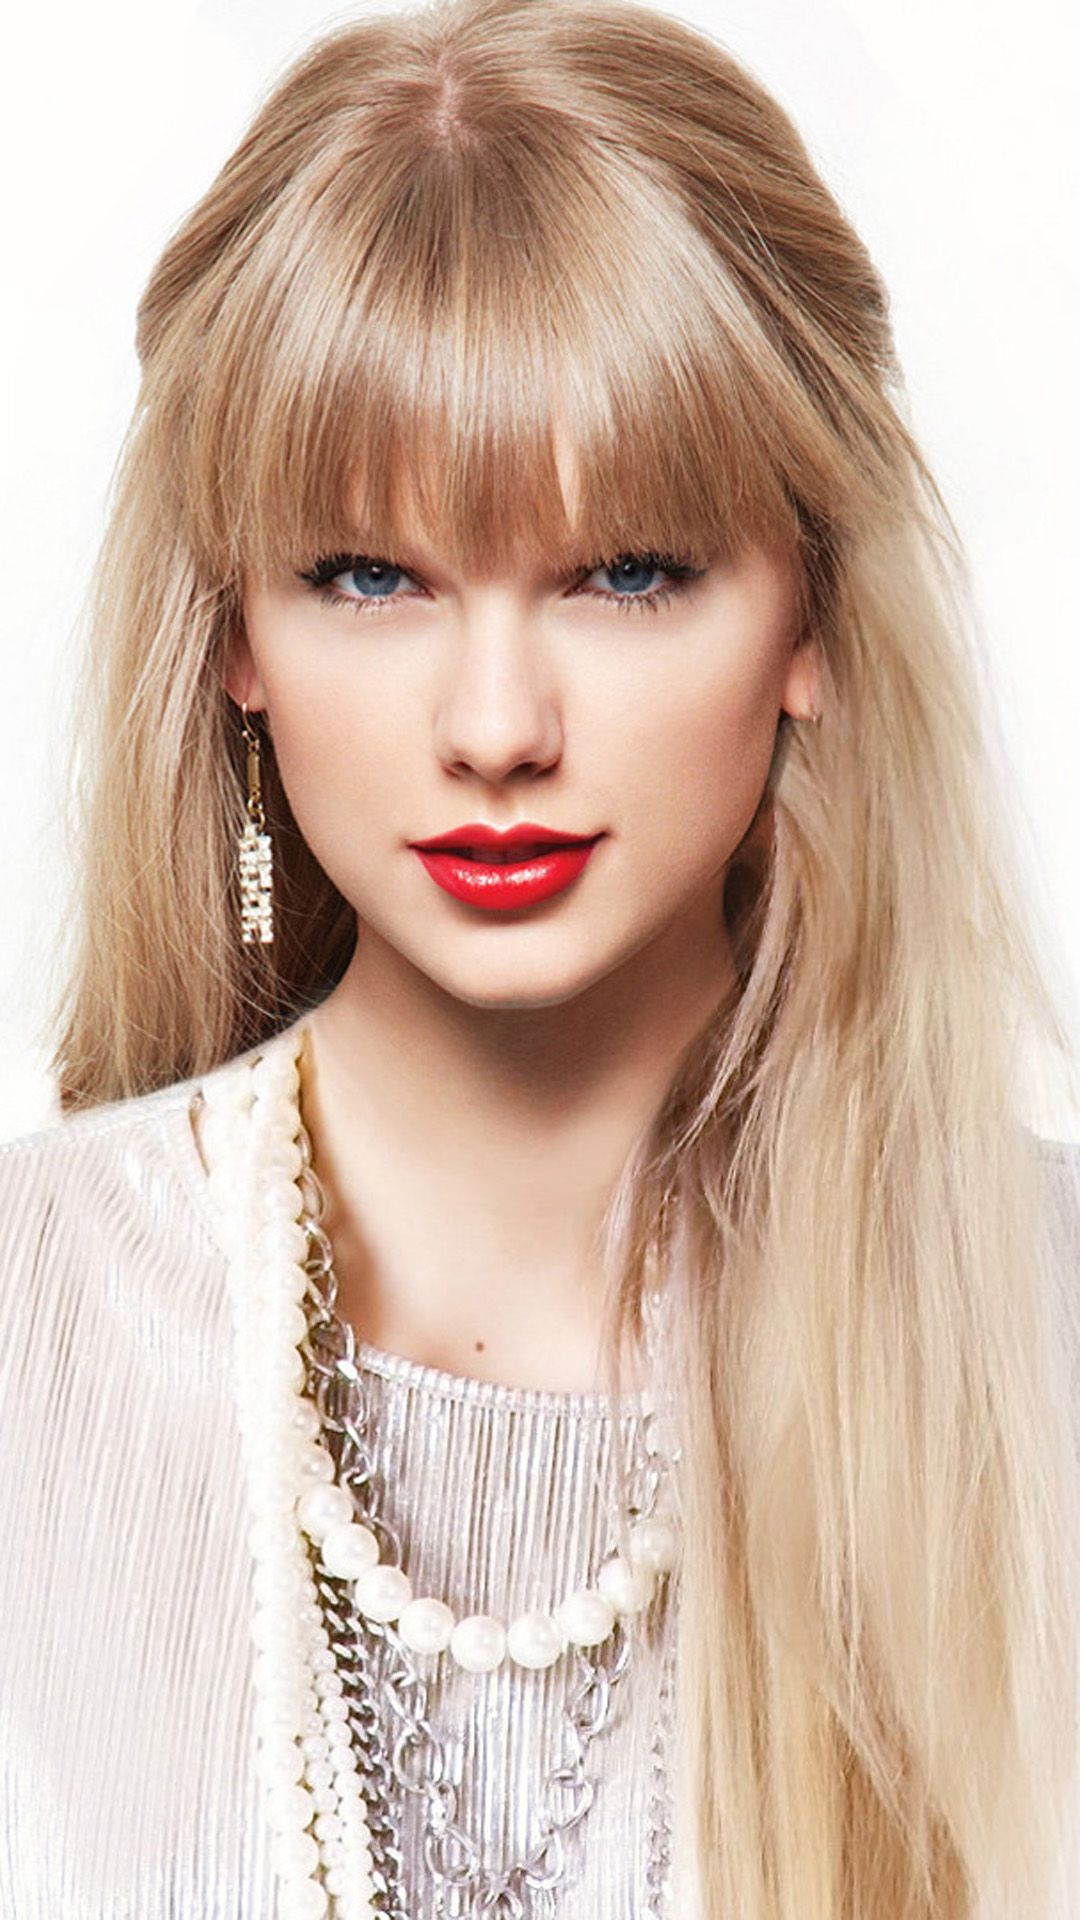 Taylor Swift Samsung HD Wallpaper